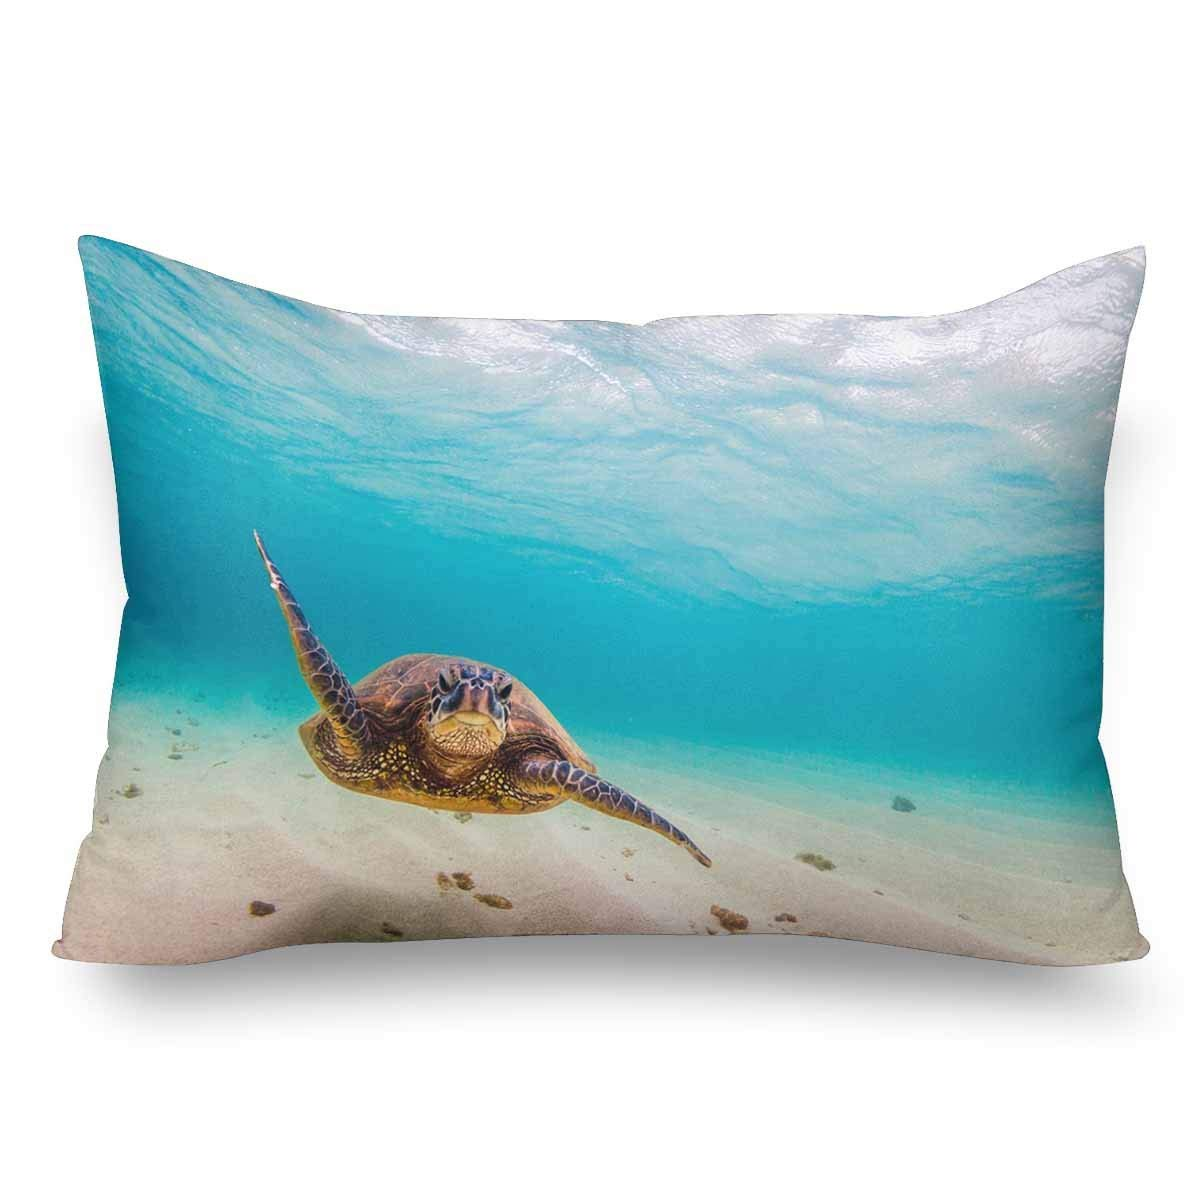 GCKG Hawaii Sea Turtle Fish Underwater Ocean Wave Beach Green Pillow Cases Pillowcase 20x30 inches - image 4 of 4